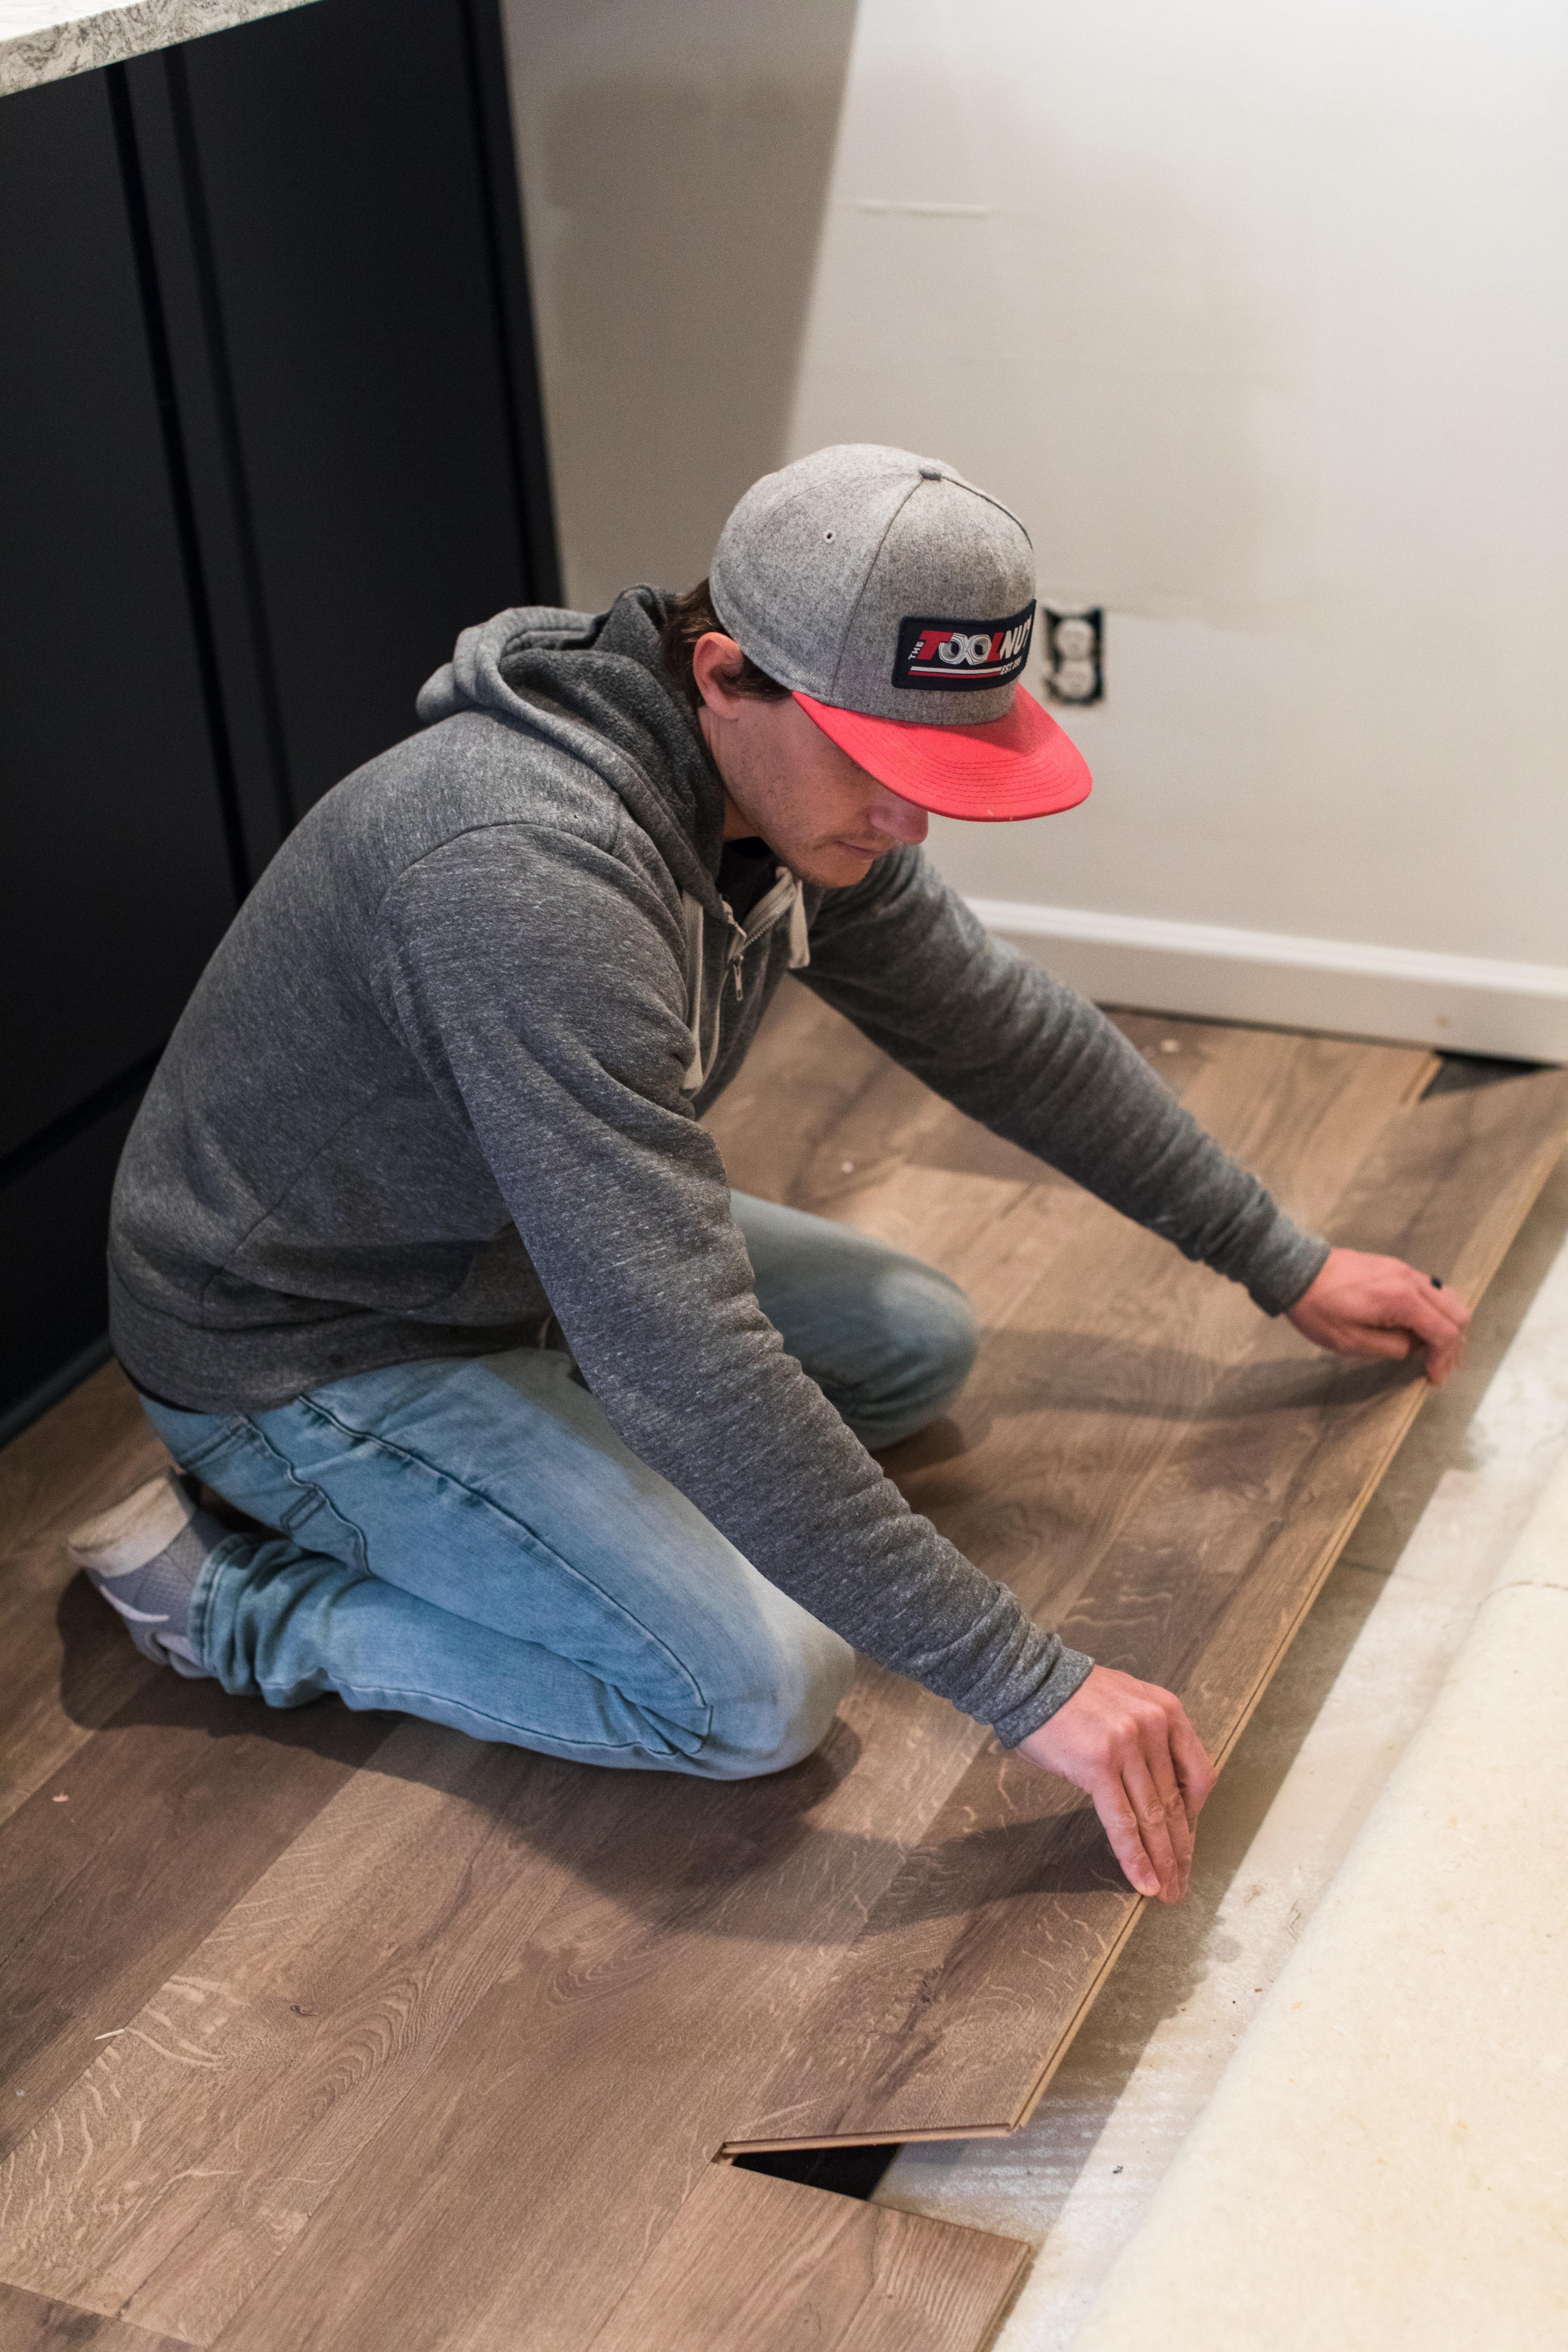 How To Install Laminate Flooring Over A Tile Floor Today S Homeowner Installing Laminate Flooring Installing Laminate Wood Flooring Flooring